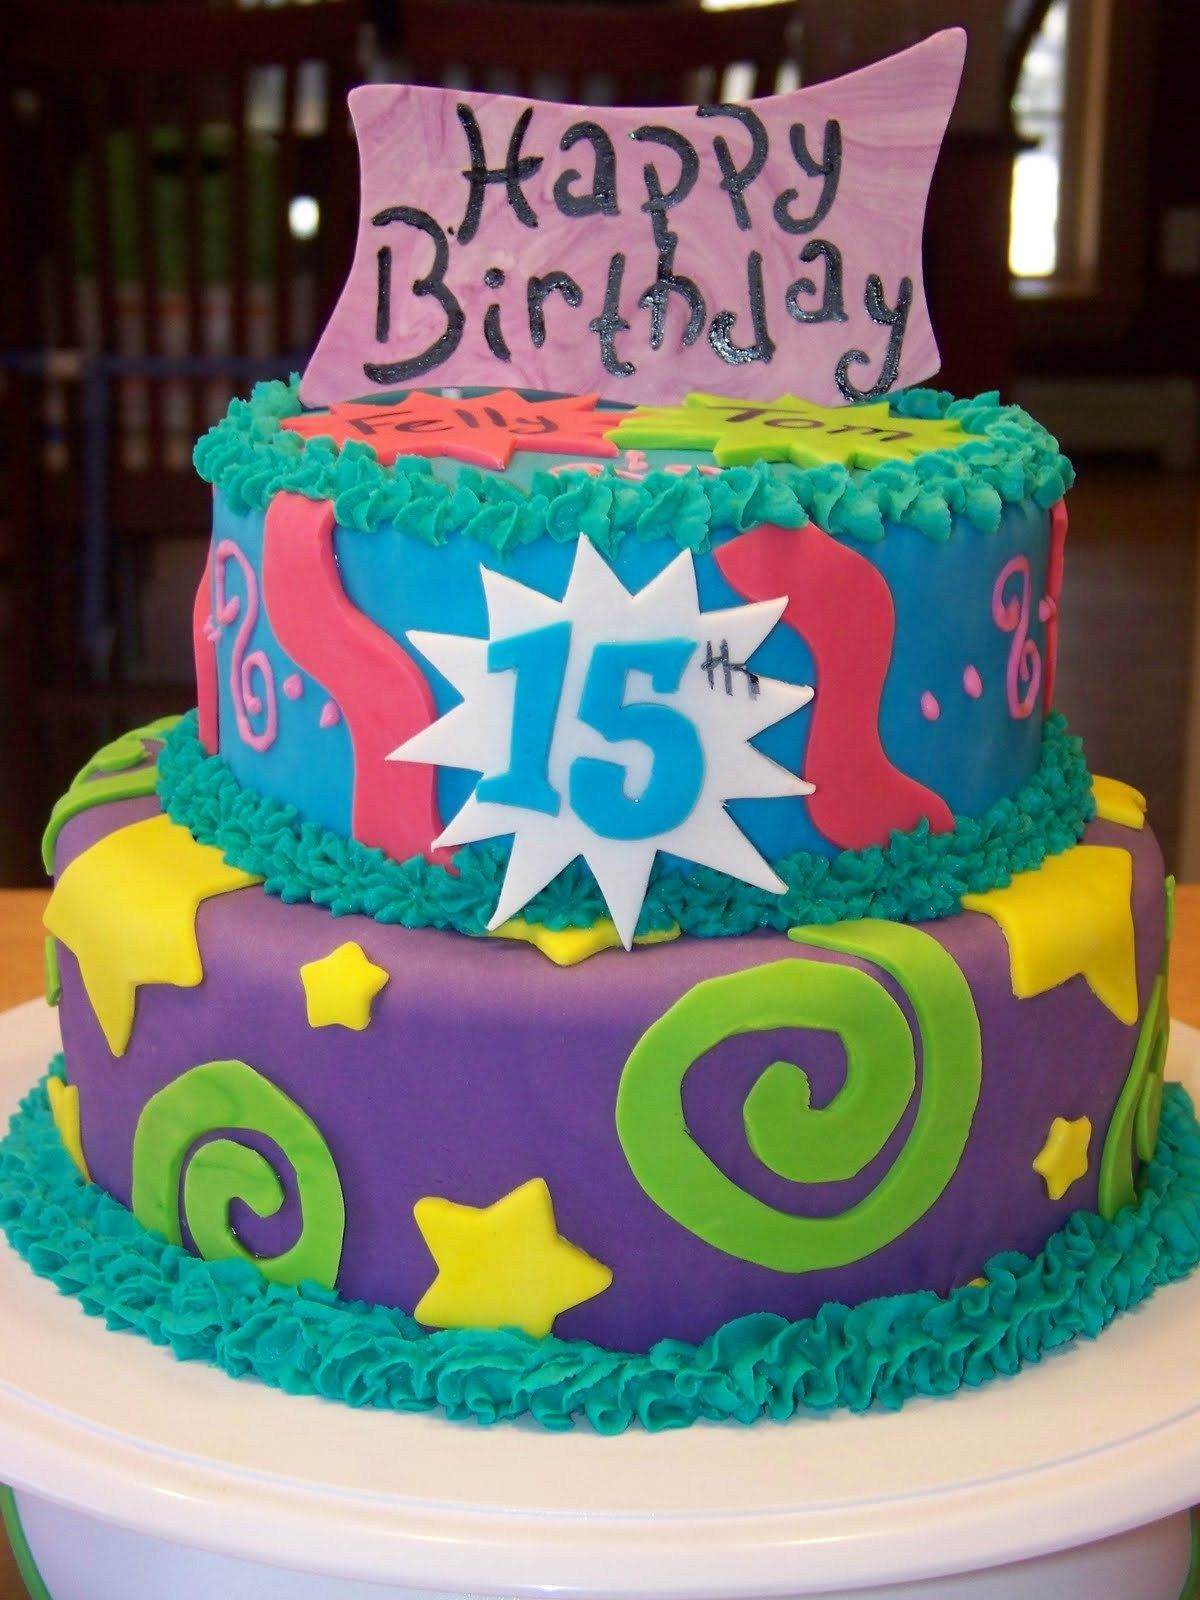 21 Beautiful Image Of 15 Birthday Cakes With Images 15th